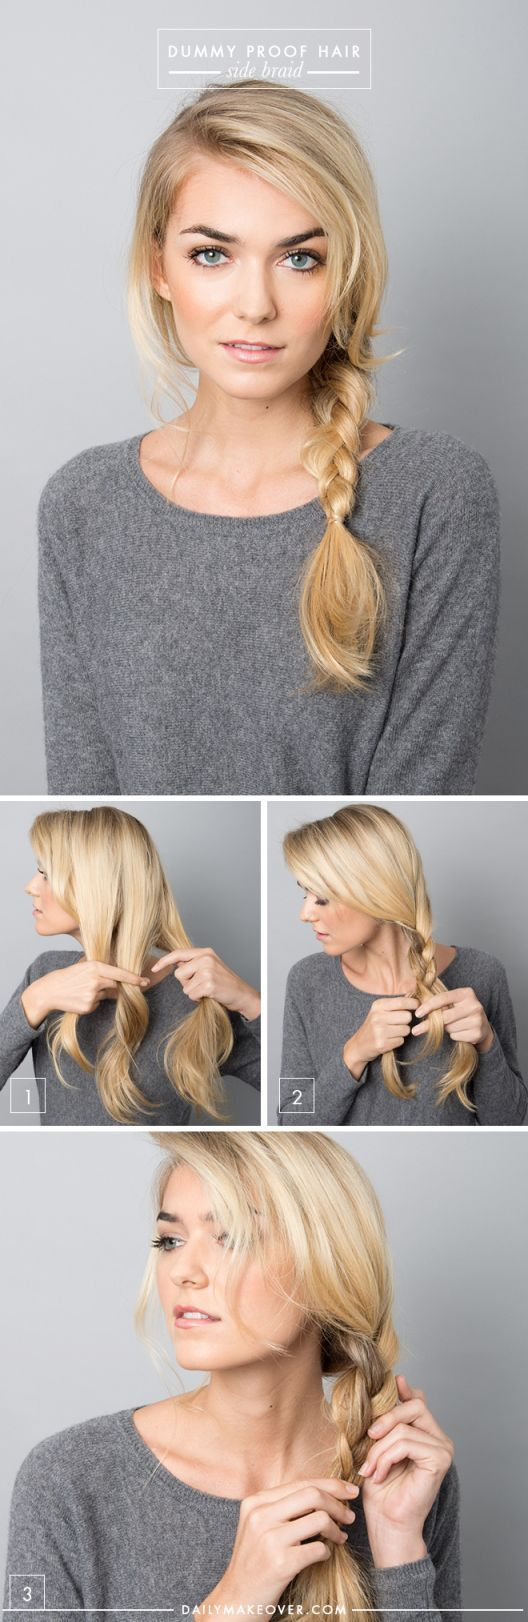 easy side braid tutorial